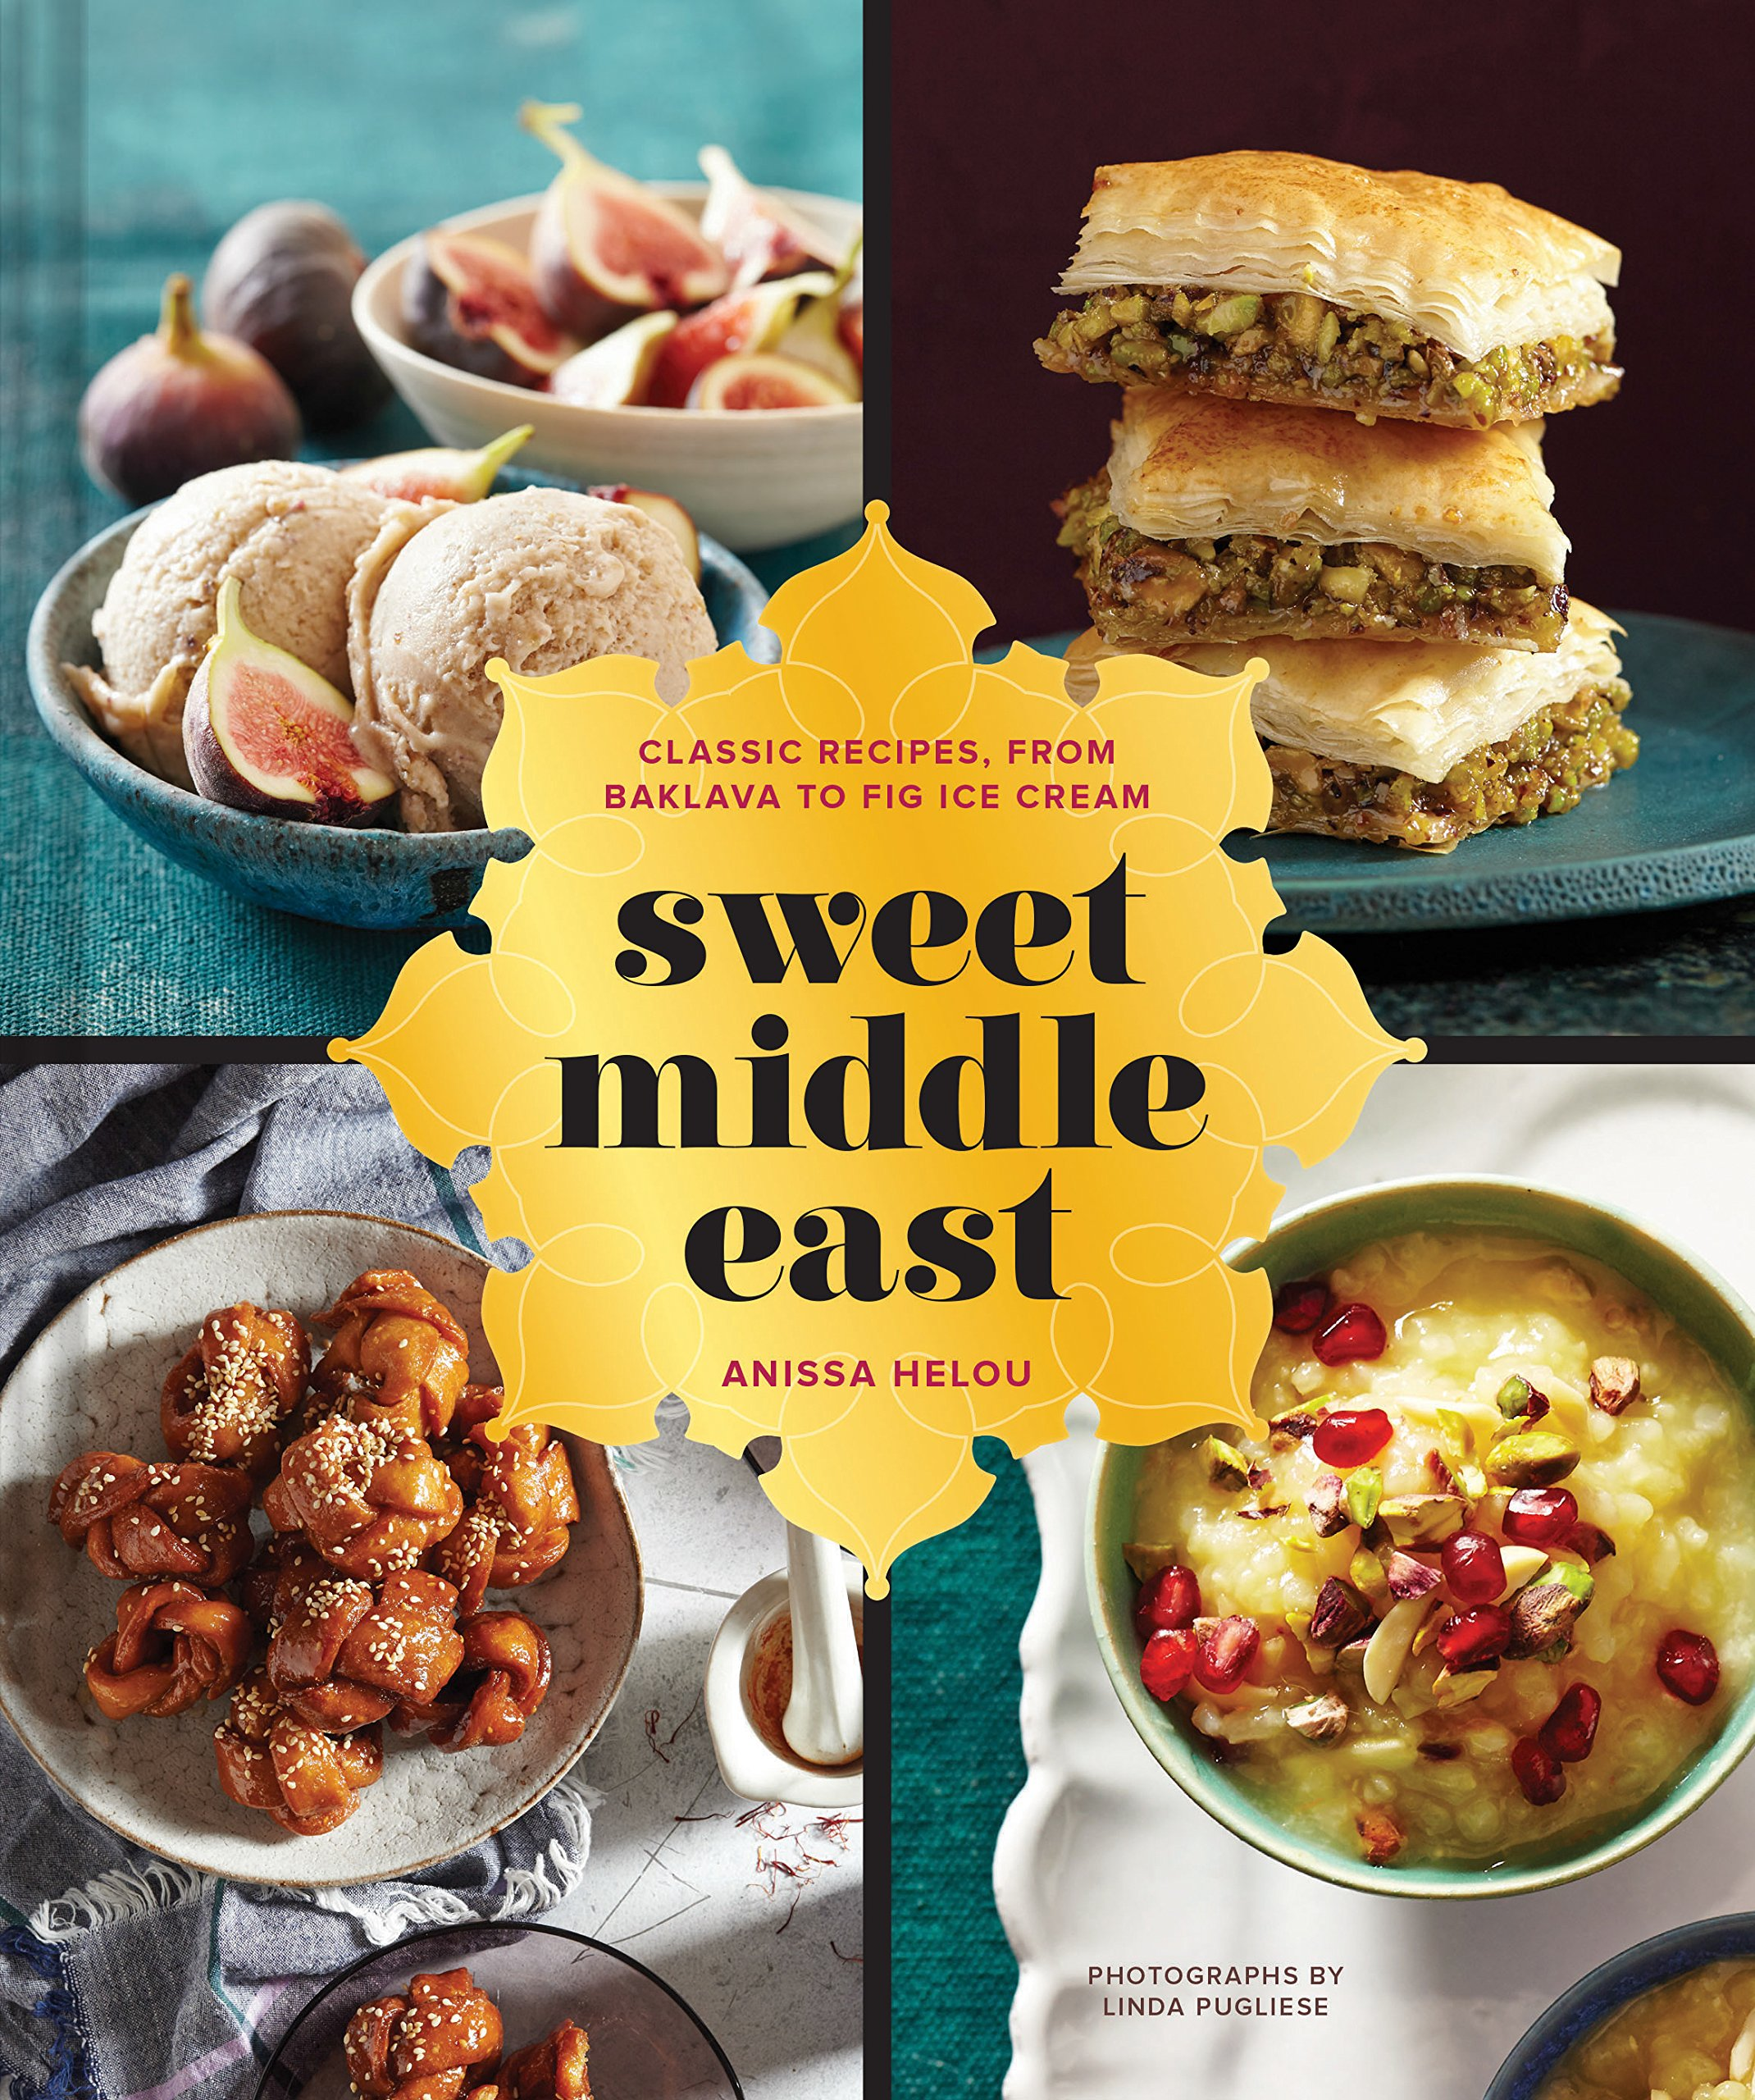 Sweet middle east classic recipes from baklava to fig ice cream sweet middle east classic recipes from baklava to fig ice cream anissa helou linda pugliese 9781452114392 amazon books forumfinder Image collections